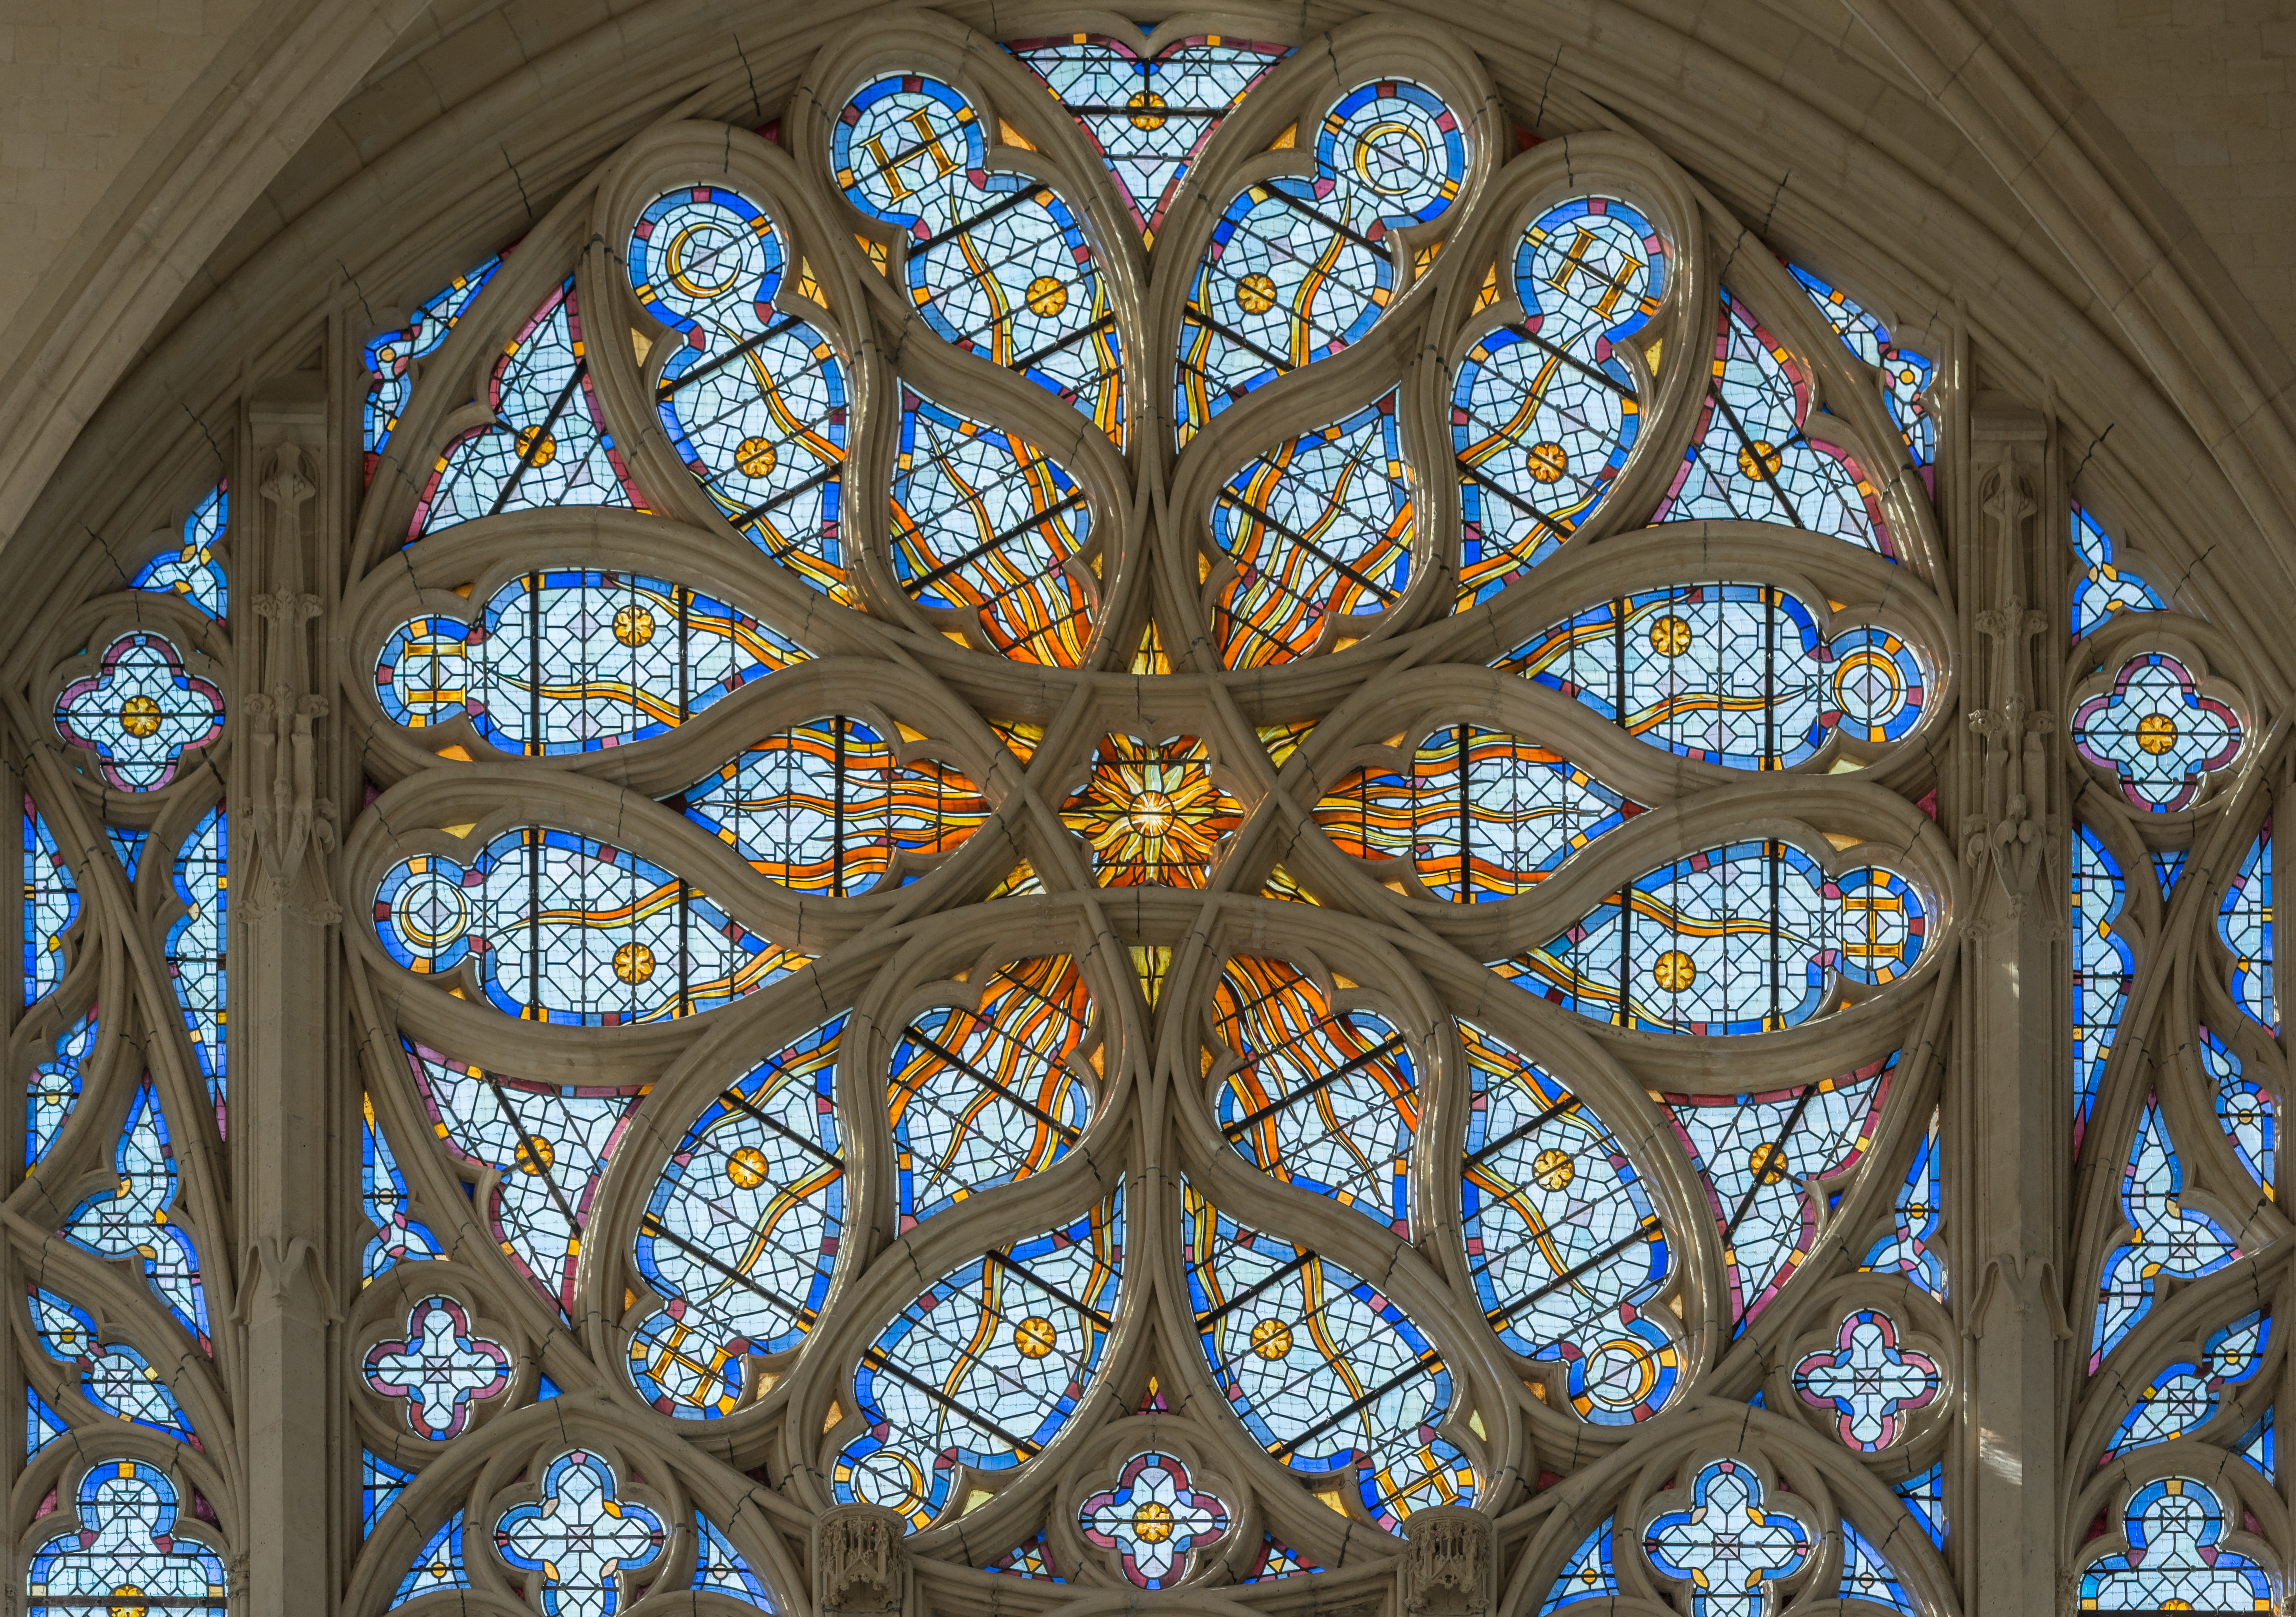 FileRose Window Of Sainte Chapelle De Vincennes Interior View 140308 1